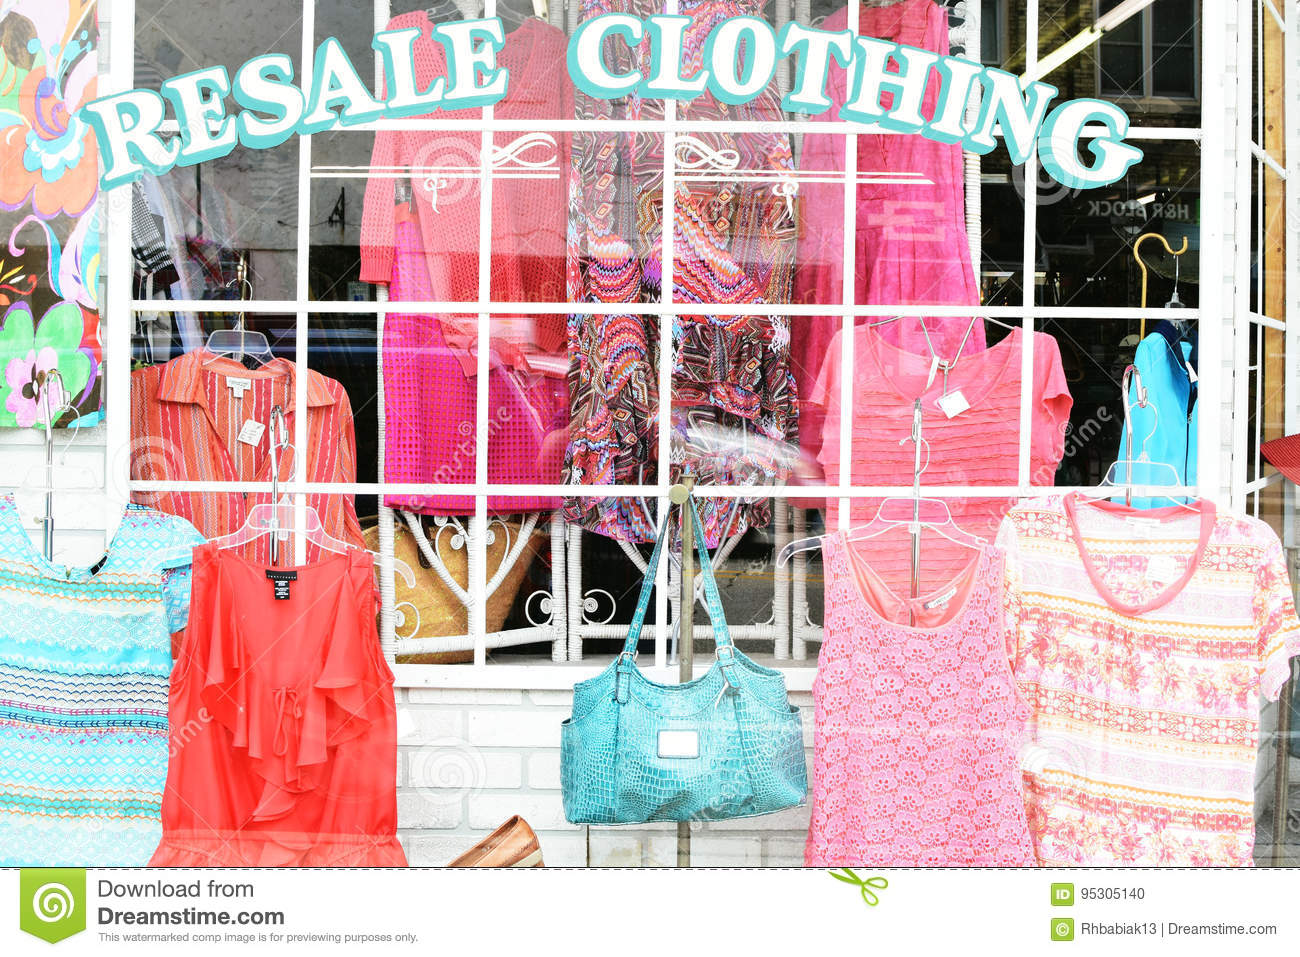 Resale Clothing